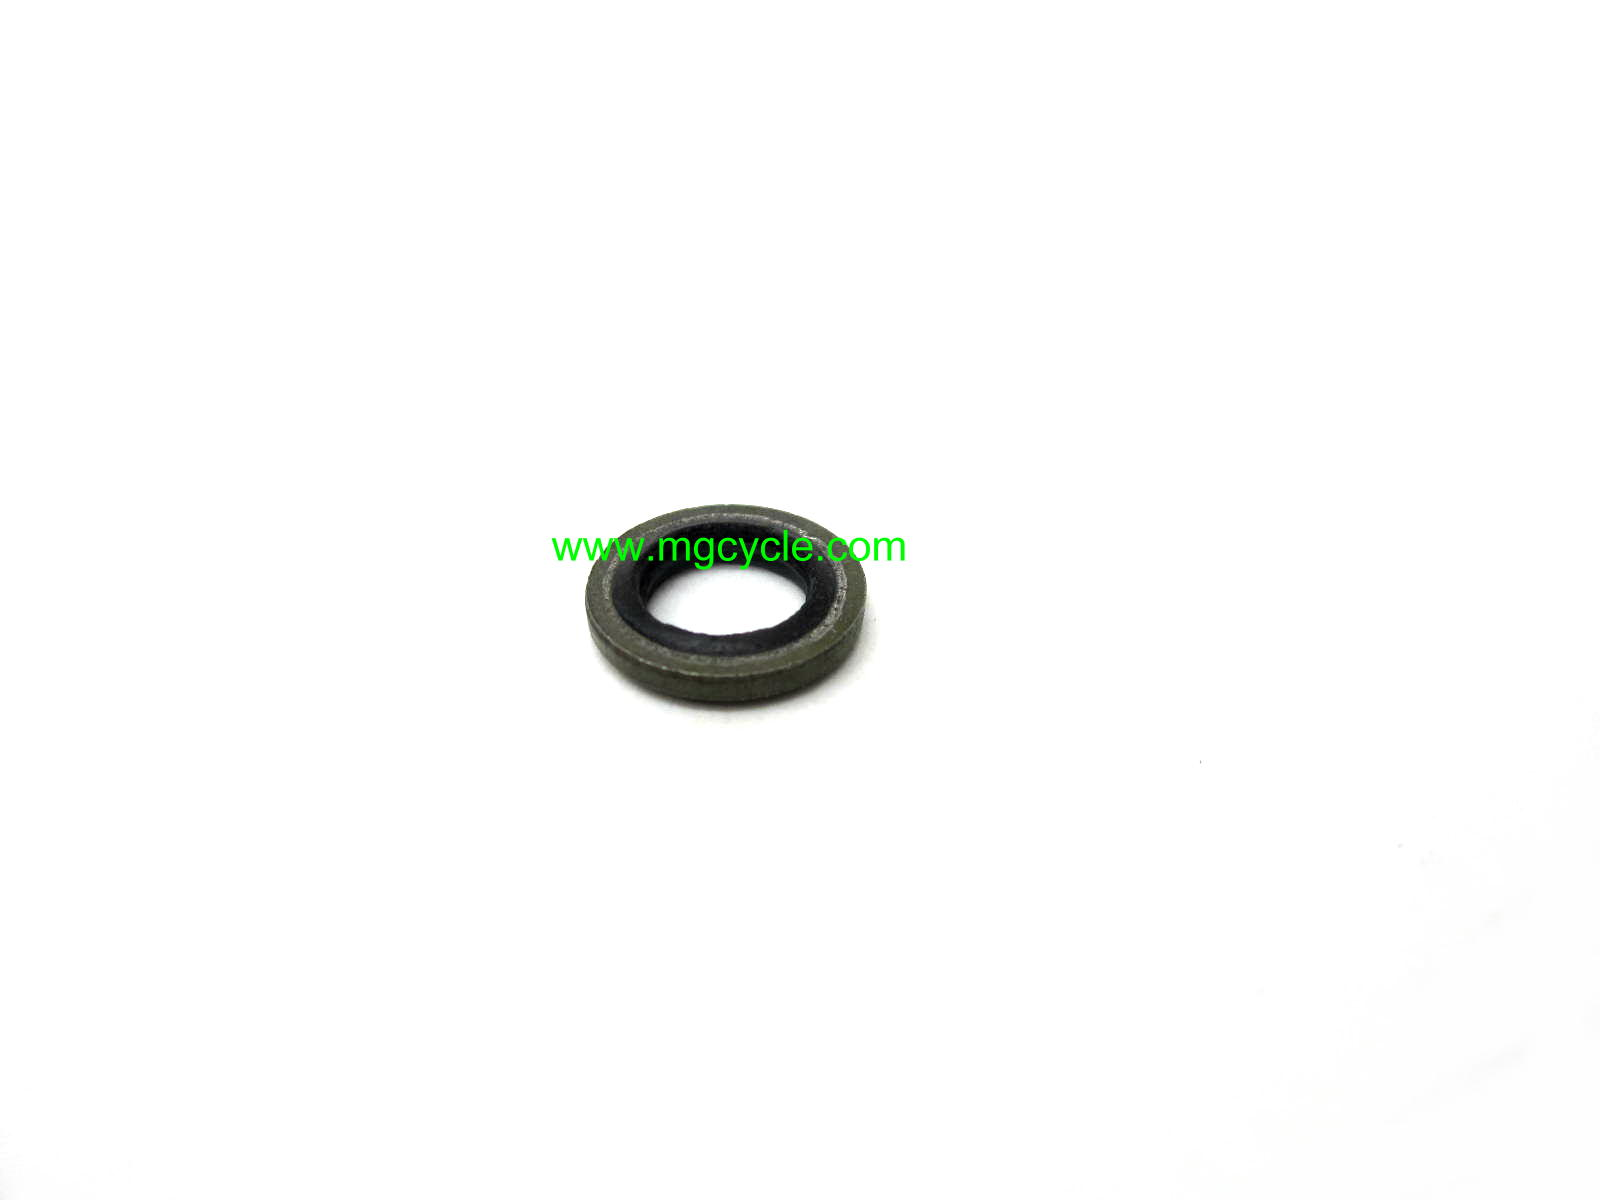 8mm seal washer with rubber center